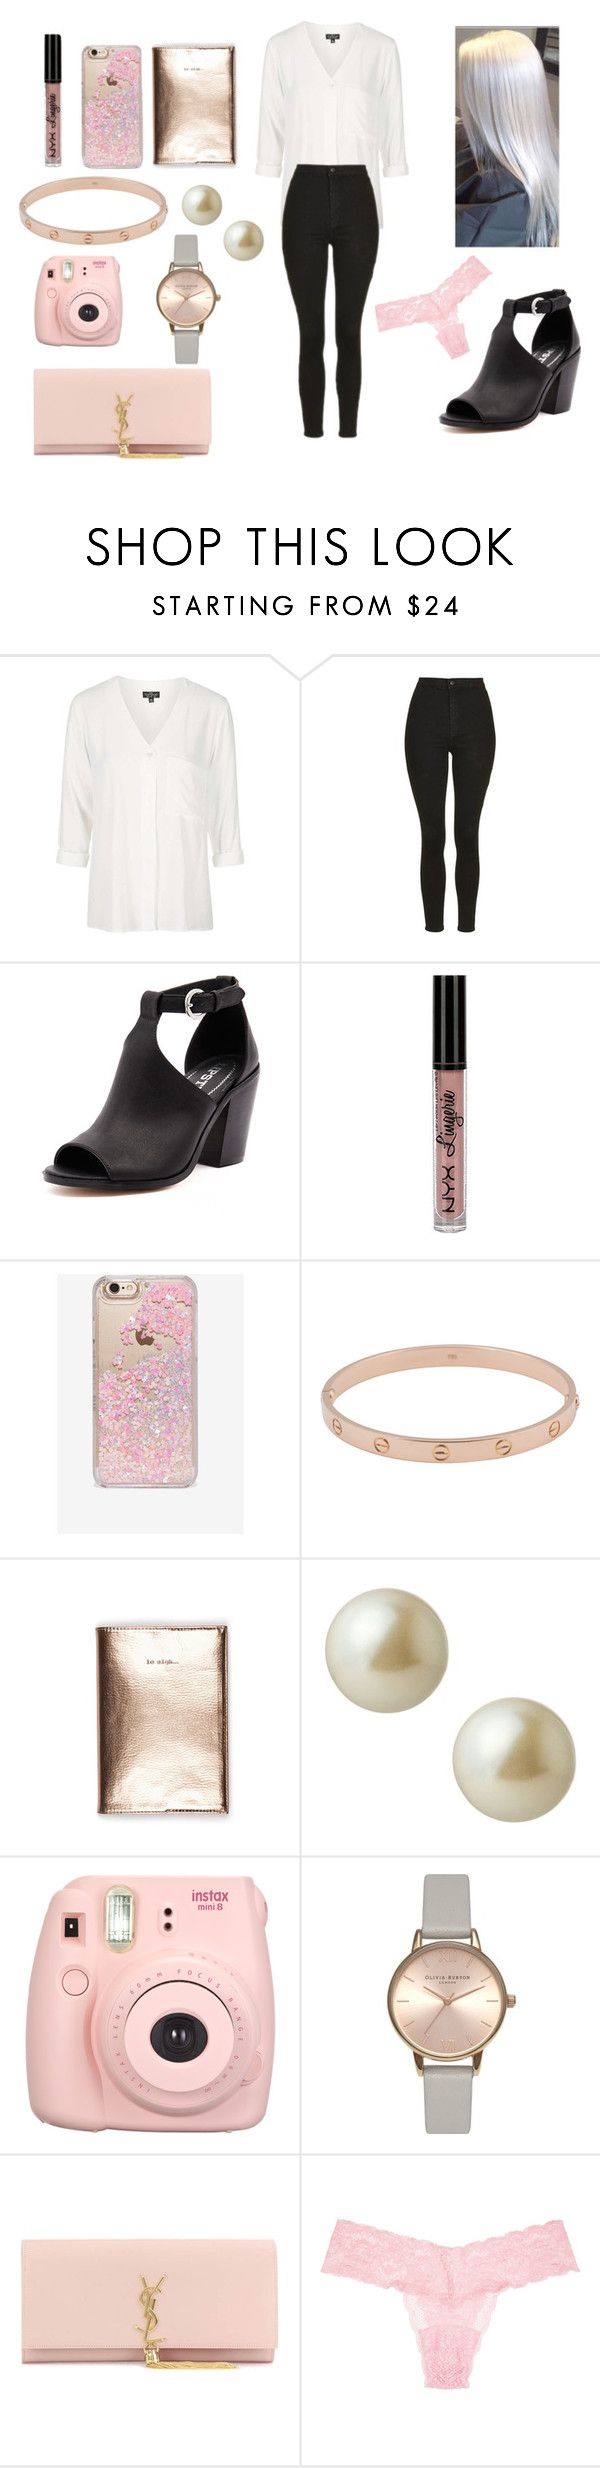 """""""Untitled #239"""" by allgoodbabybaby on Polyvore featuring Topshop, Lipstik, NYX, Skinnydip, Cartier, Carolee, Olivia Burton, Yves Saint Laurent and Cosabella"""